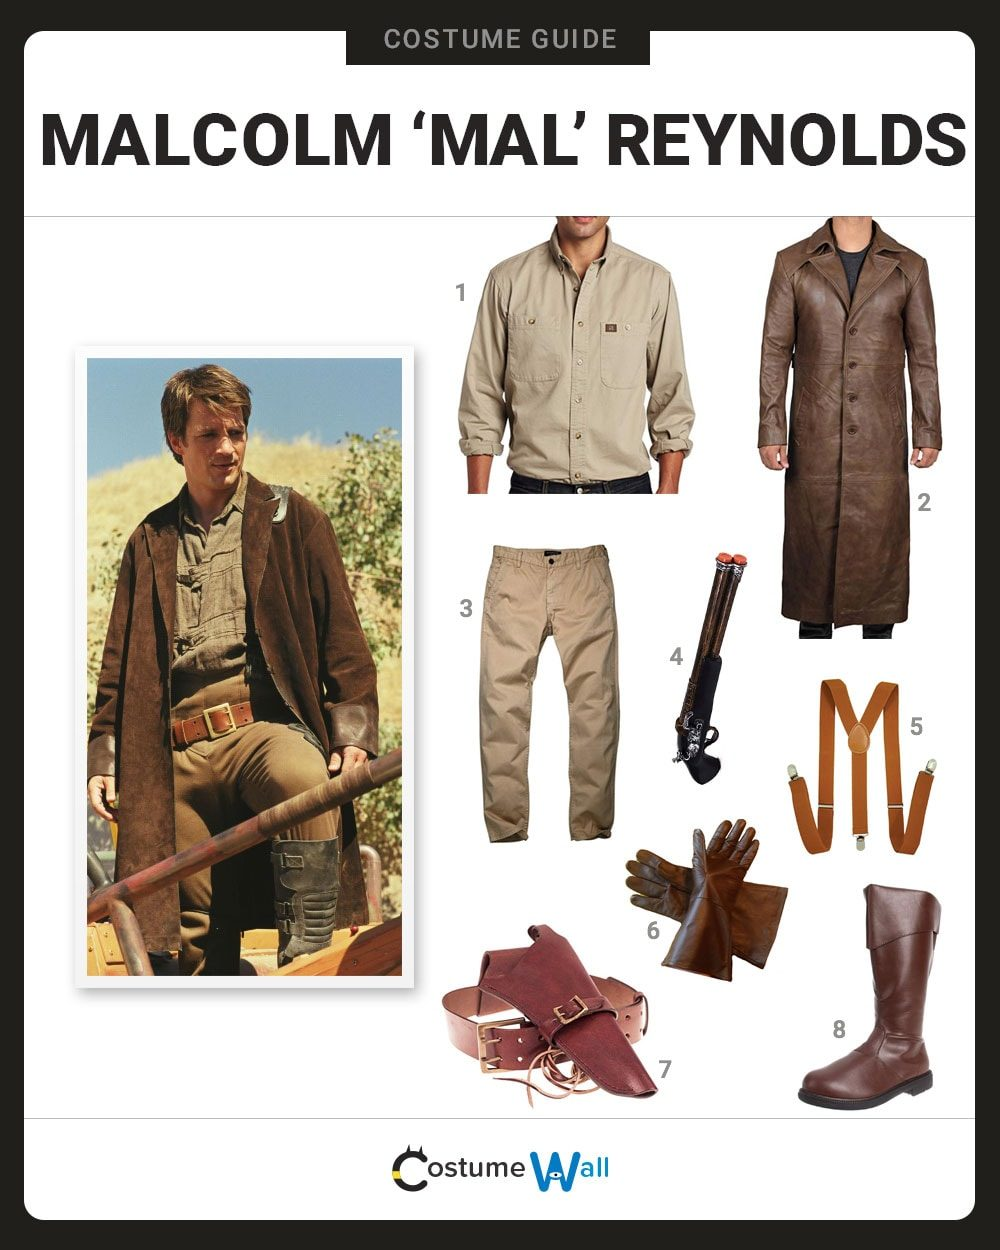 Malcolm 'Mal' Reynolds Costume Guide